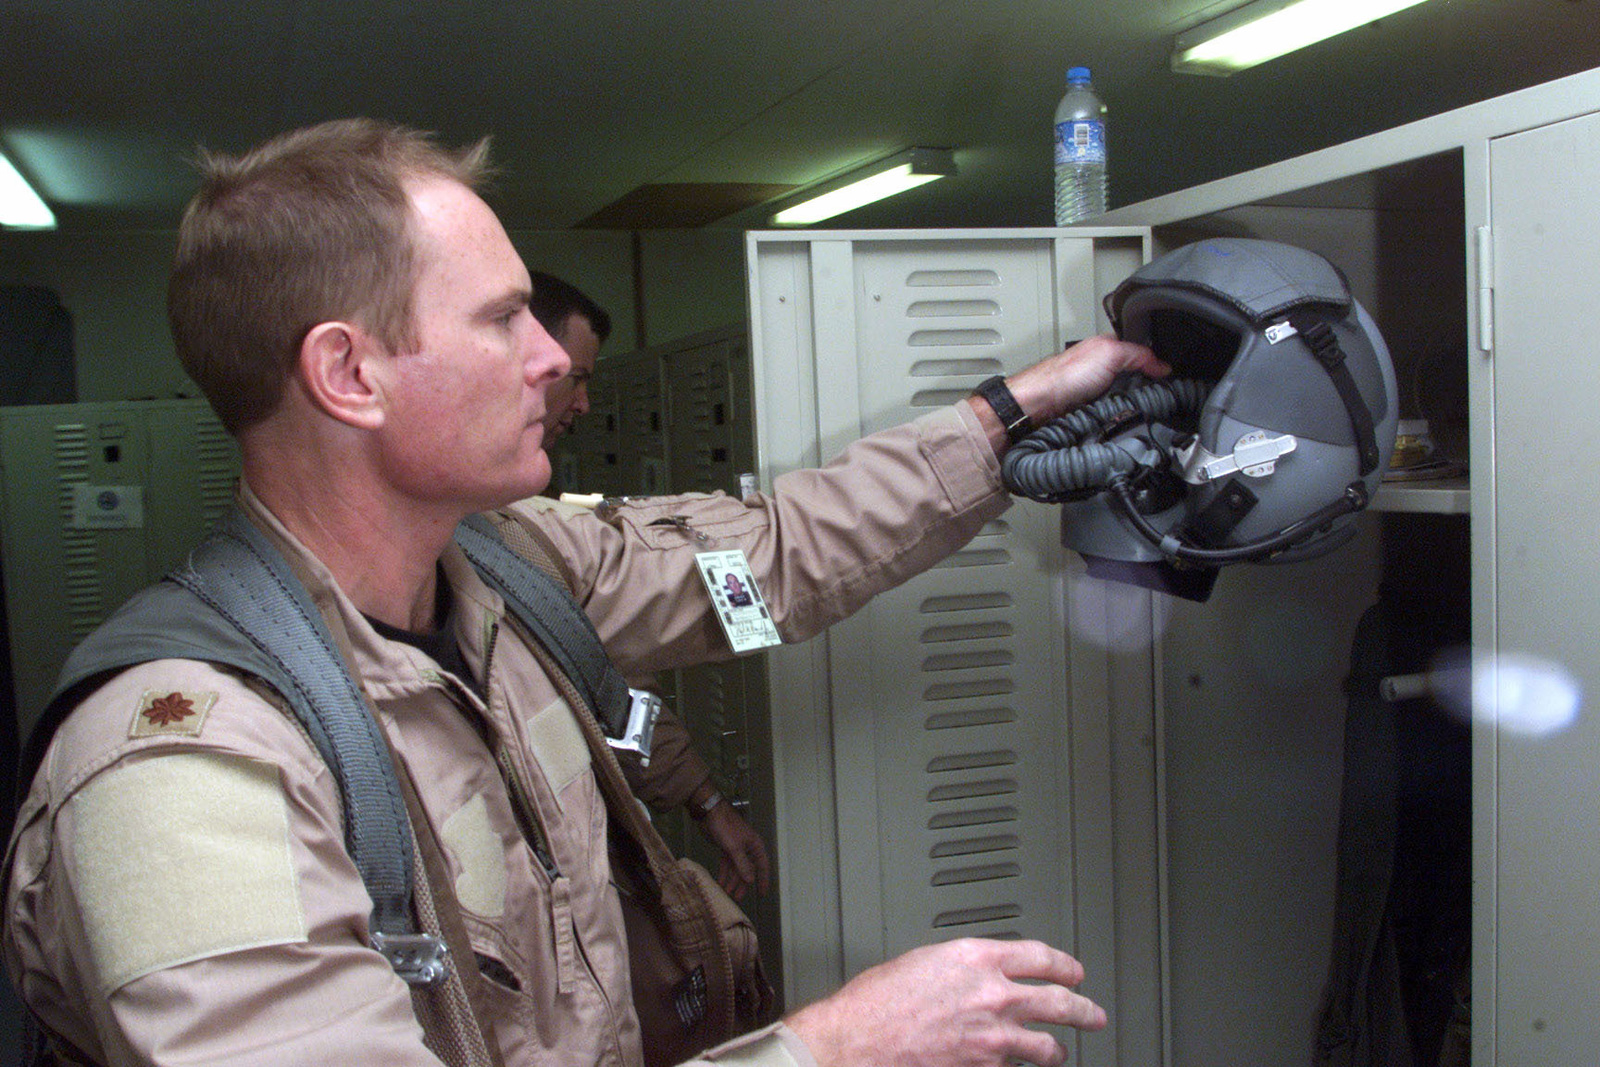 US Air Force Major Floyd Hancock an F-15 Eagle pilot from the 122nd Fighter Squadron, Louisiana Air National Guard, puts on his equipment at life support prior to a mission at Prince Sultan Air Base, Saudi Arabia. MAJ Hancock is a part of the coalition forces of the 363rd Air Expeditionary Wing that enforces the no-fly and no-drive zone in Southern Iraq to protect and defend against Iraqi aggression in support of Operation SOUTHERN WATCH